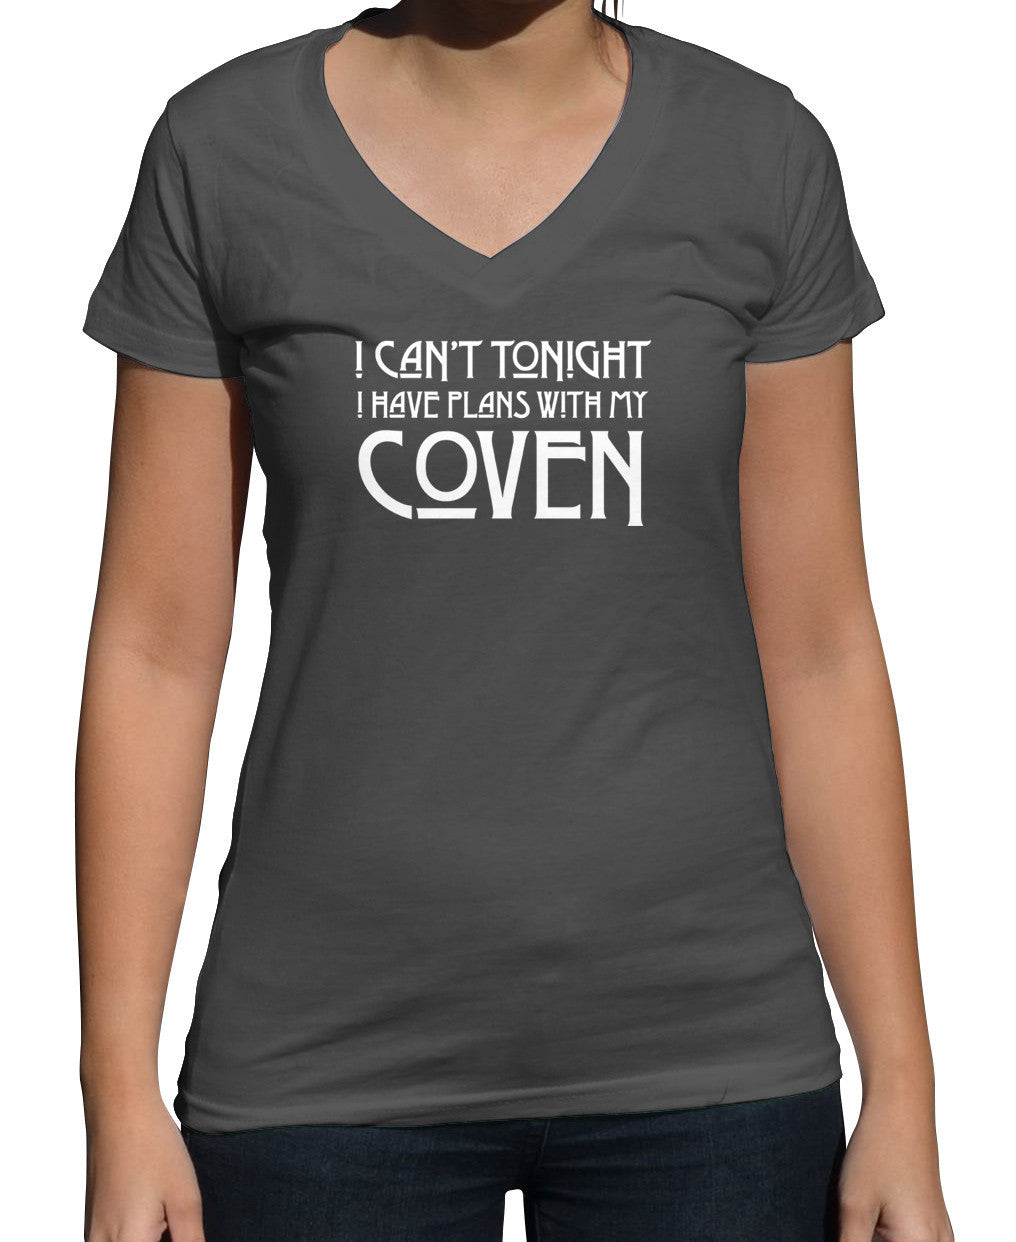 Women's I Can't Tonight I Have Plans with my Coven Vneck T-Shirt